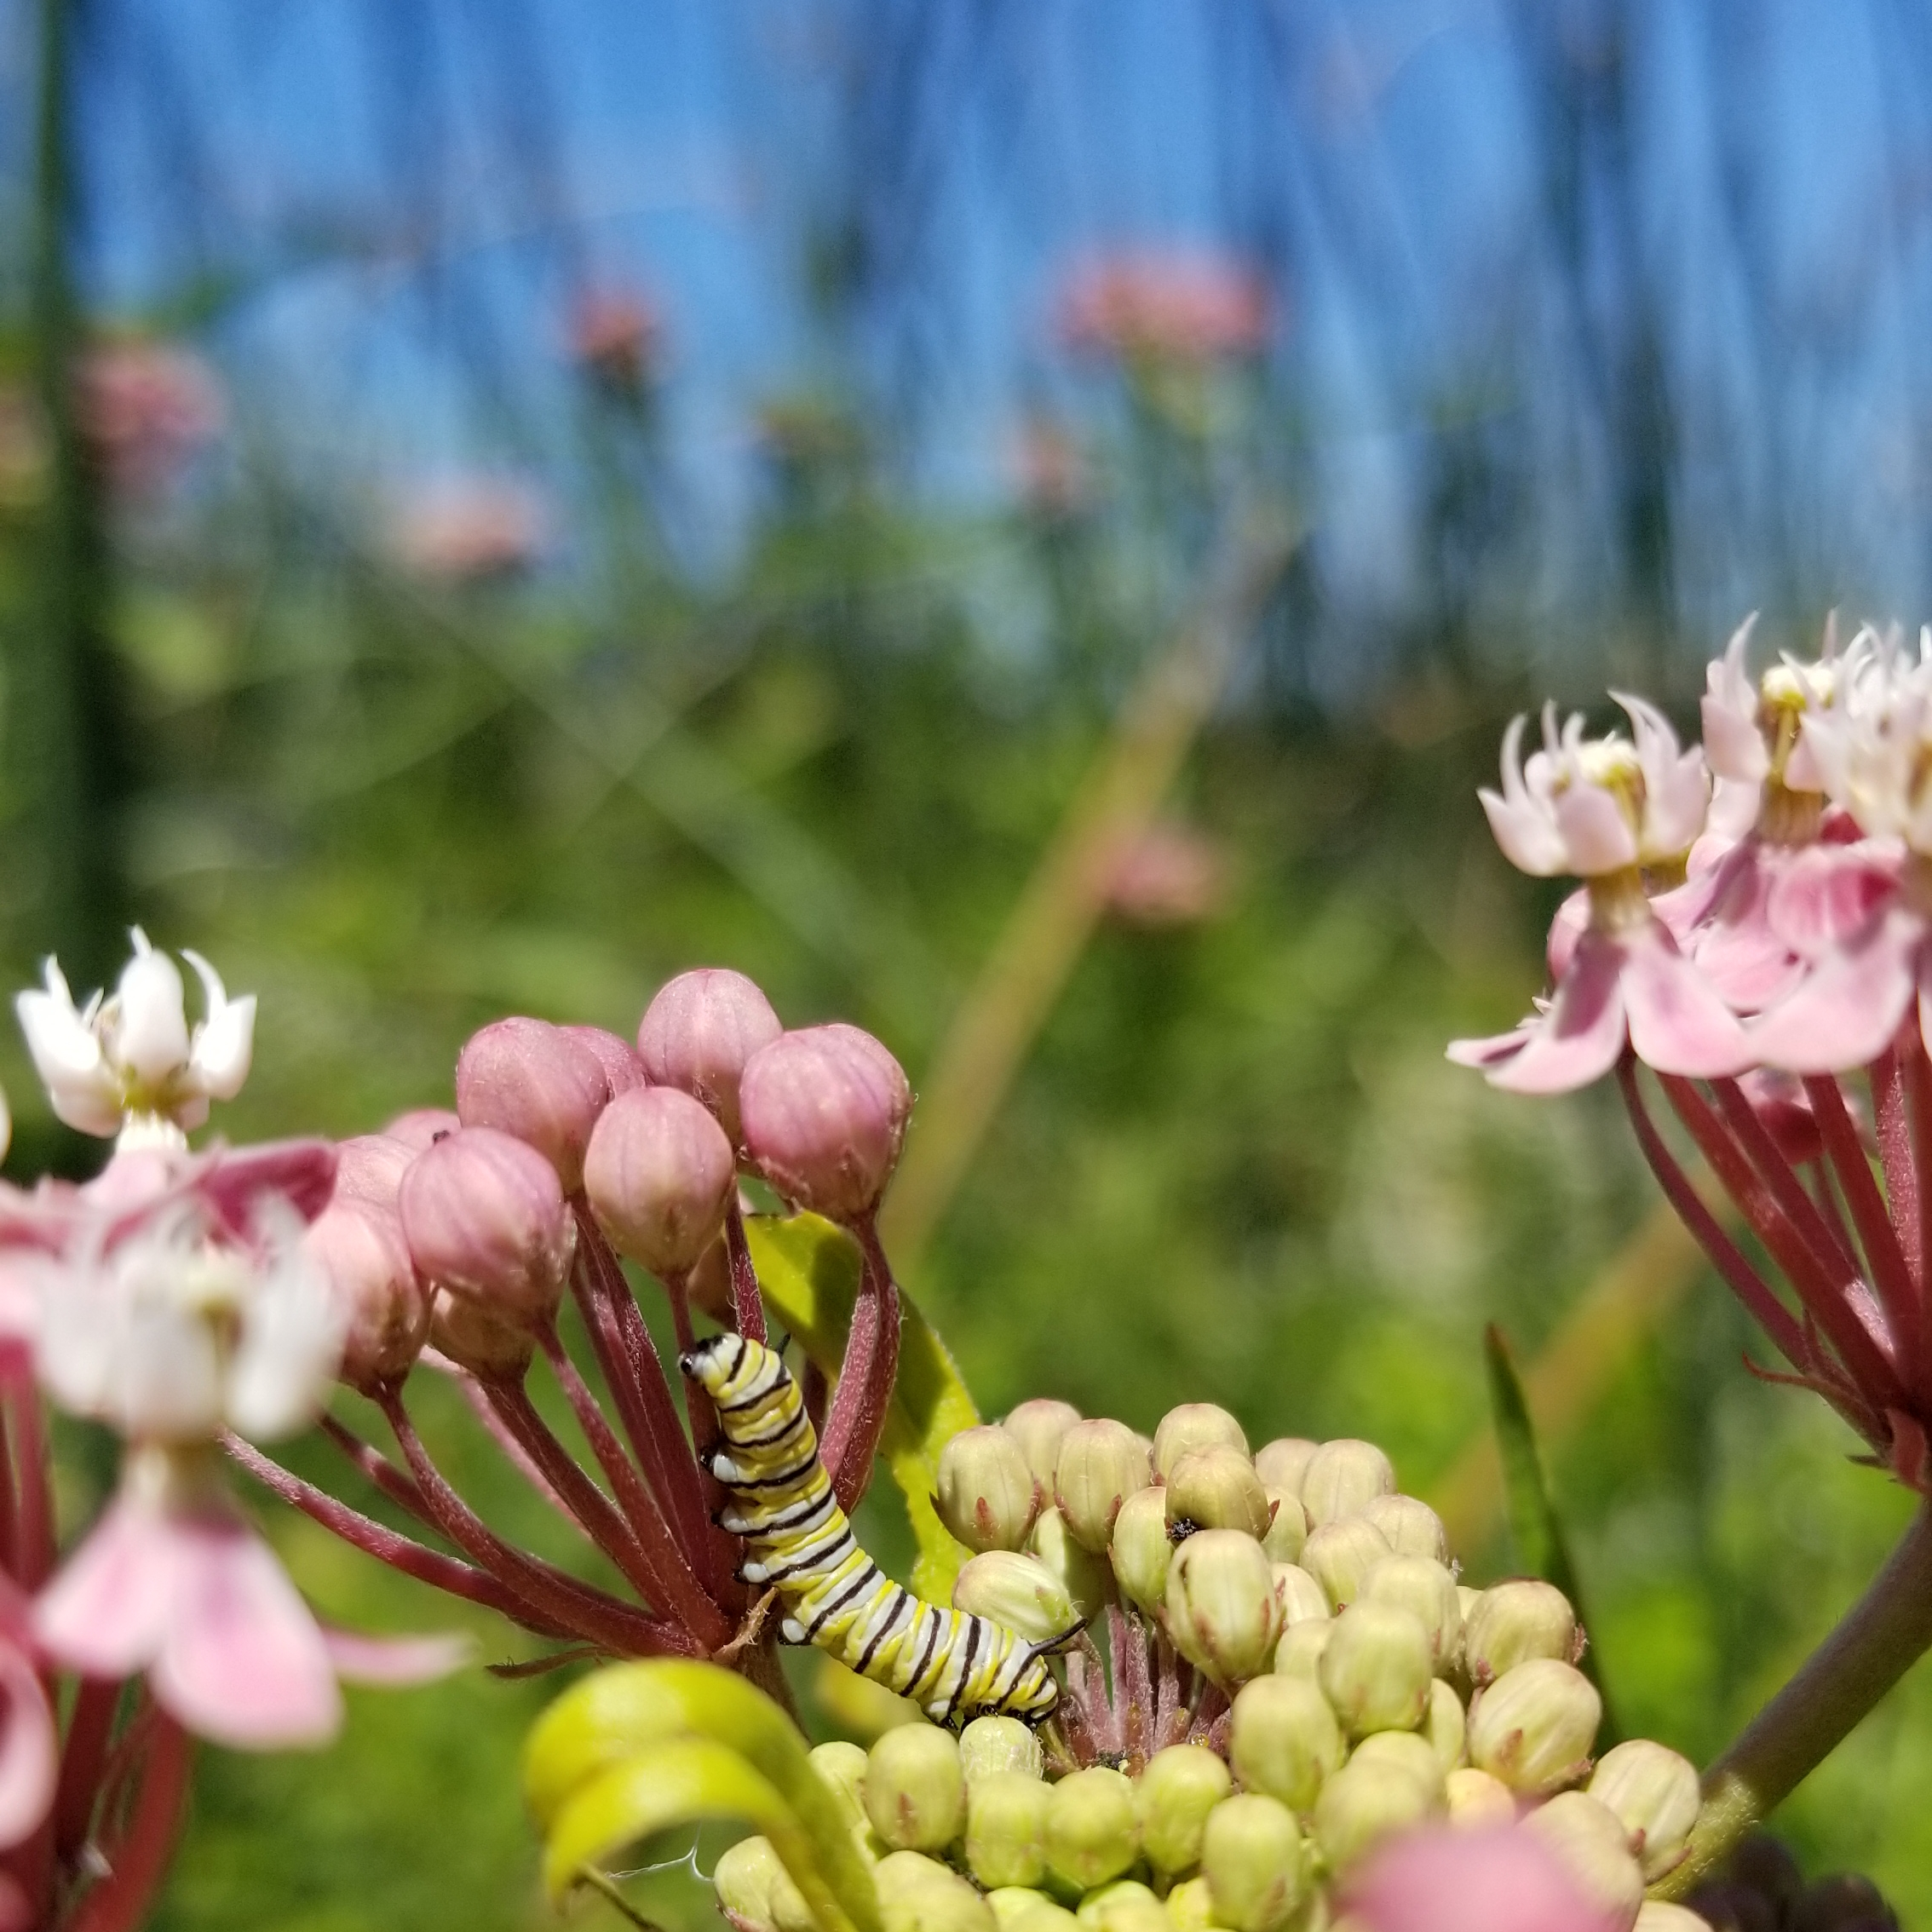 A tiny yellow, white, and black striped monarch caterpillar on the pink flowers of swamp milkweed.